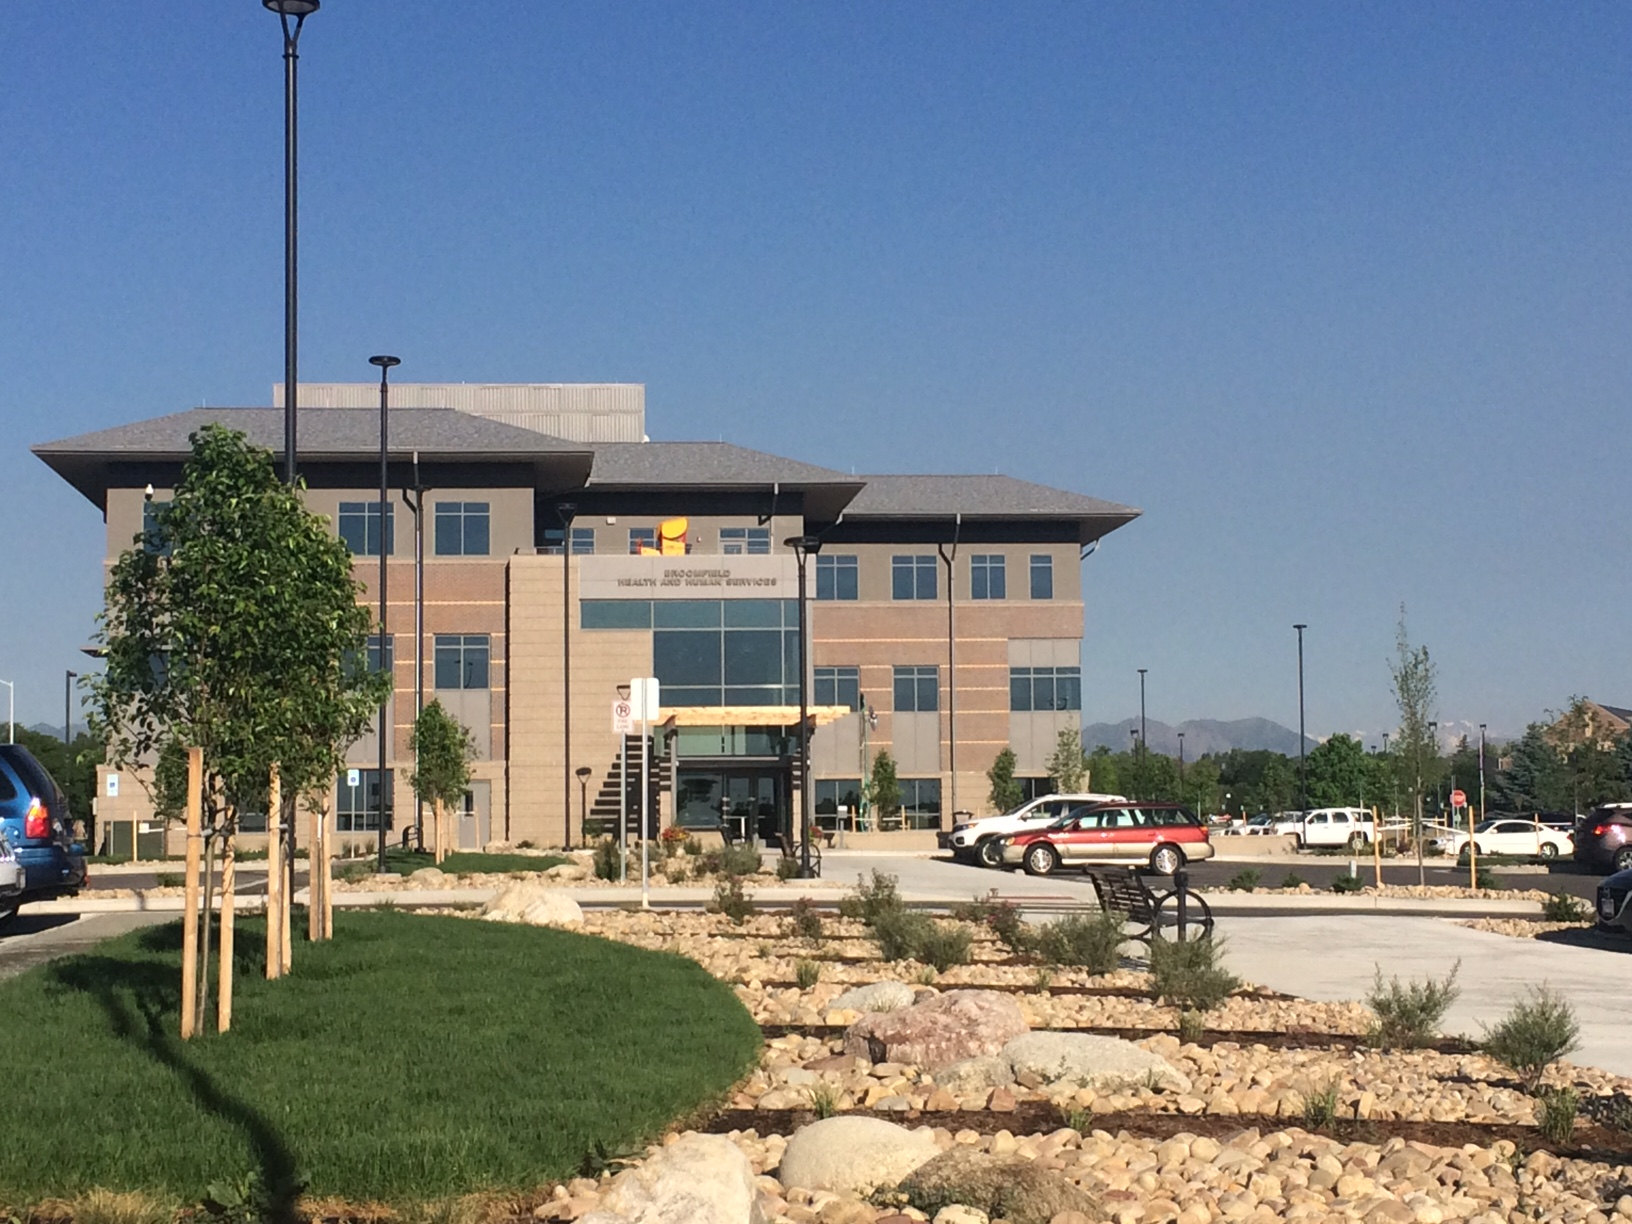 Broomfield Health and Human Services